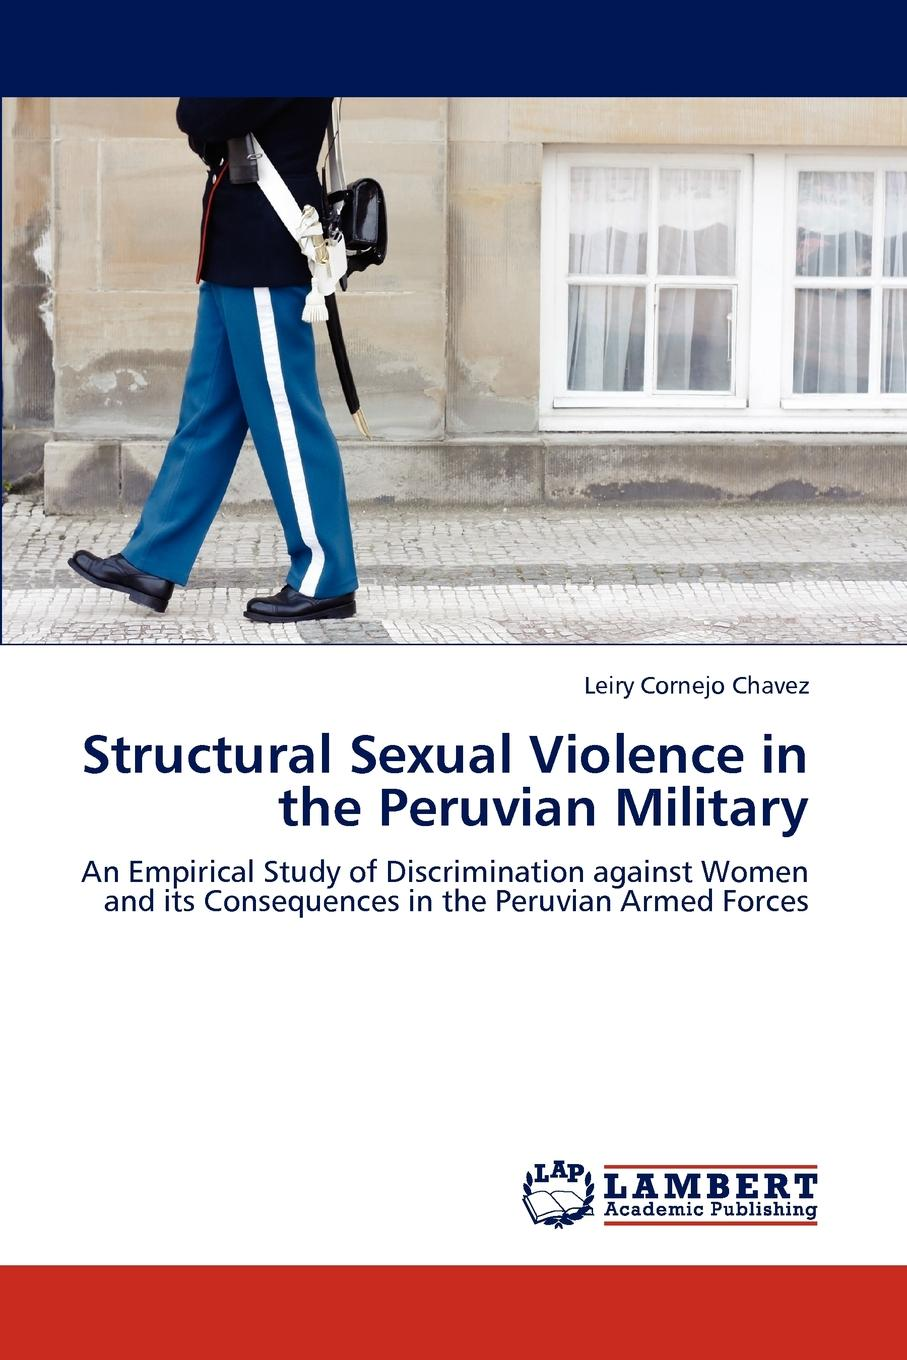 Leiry Cornejo Chavez Structural Sexual Violence in the Peruvian Military цена 2017